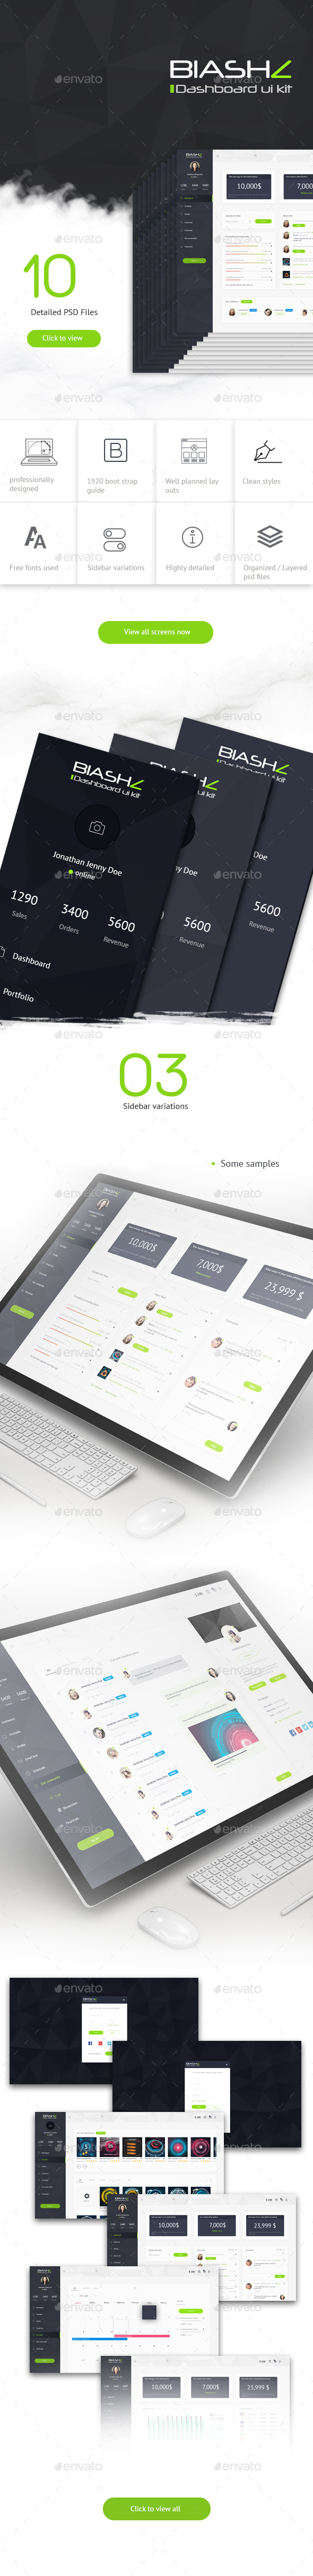 Blashz Dashboard UI Kit (User Interfaces)